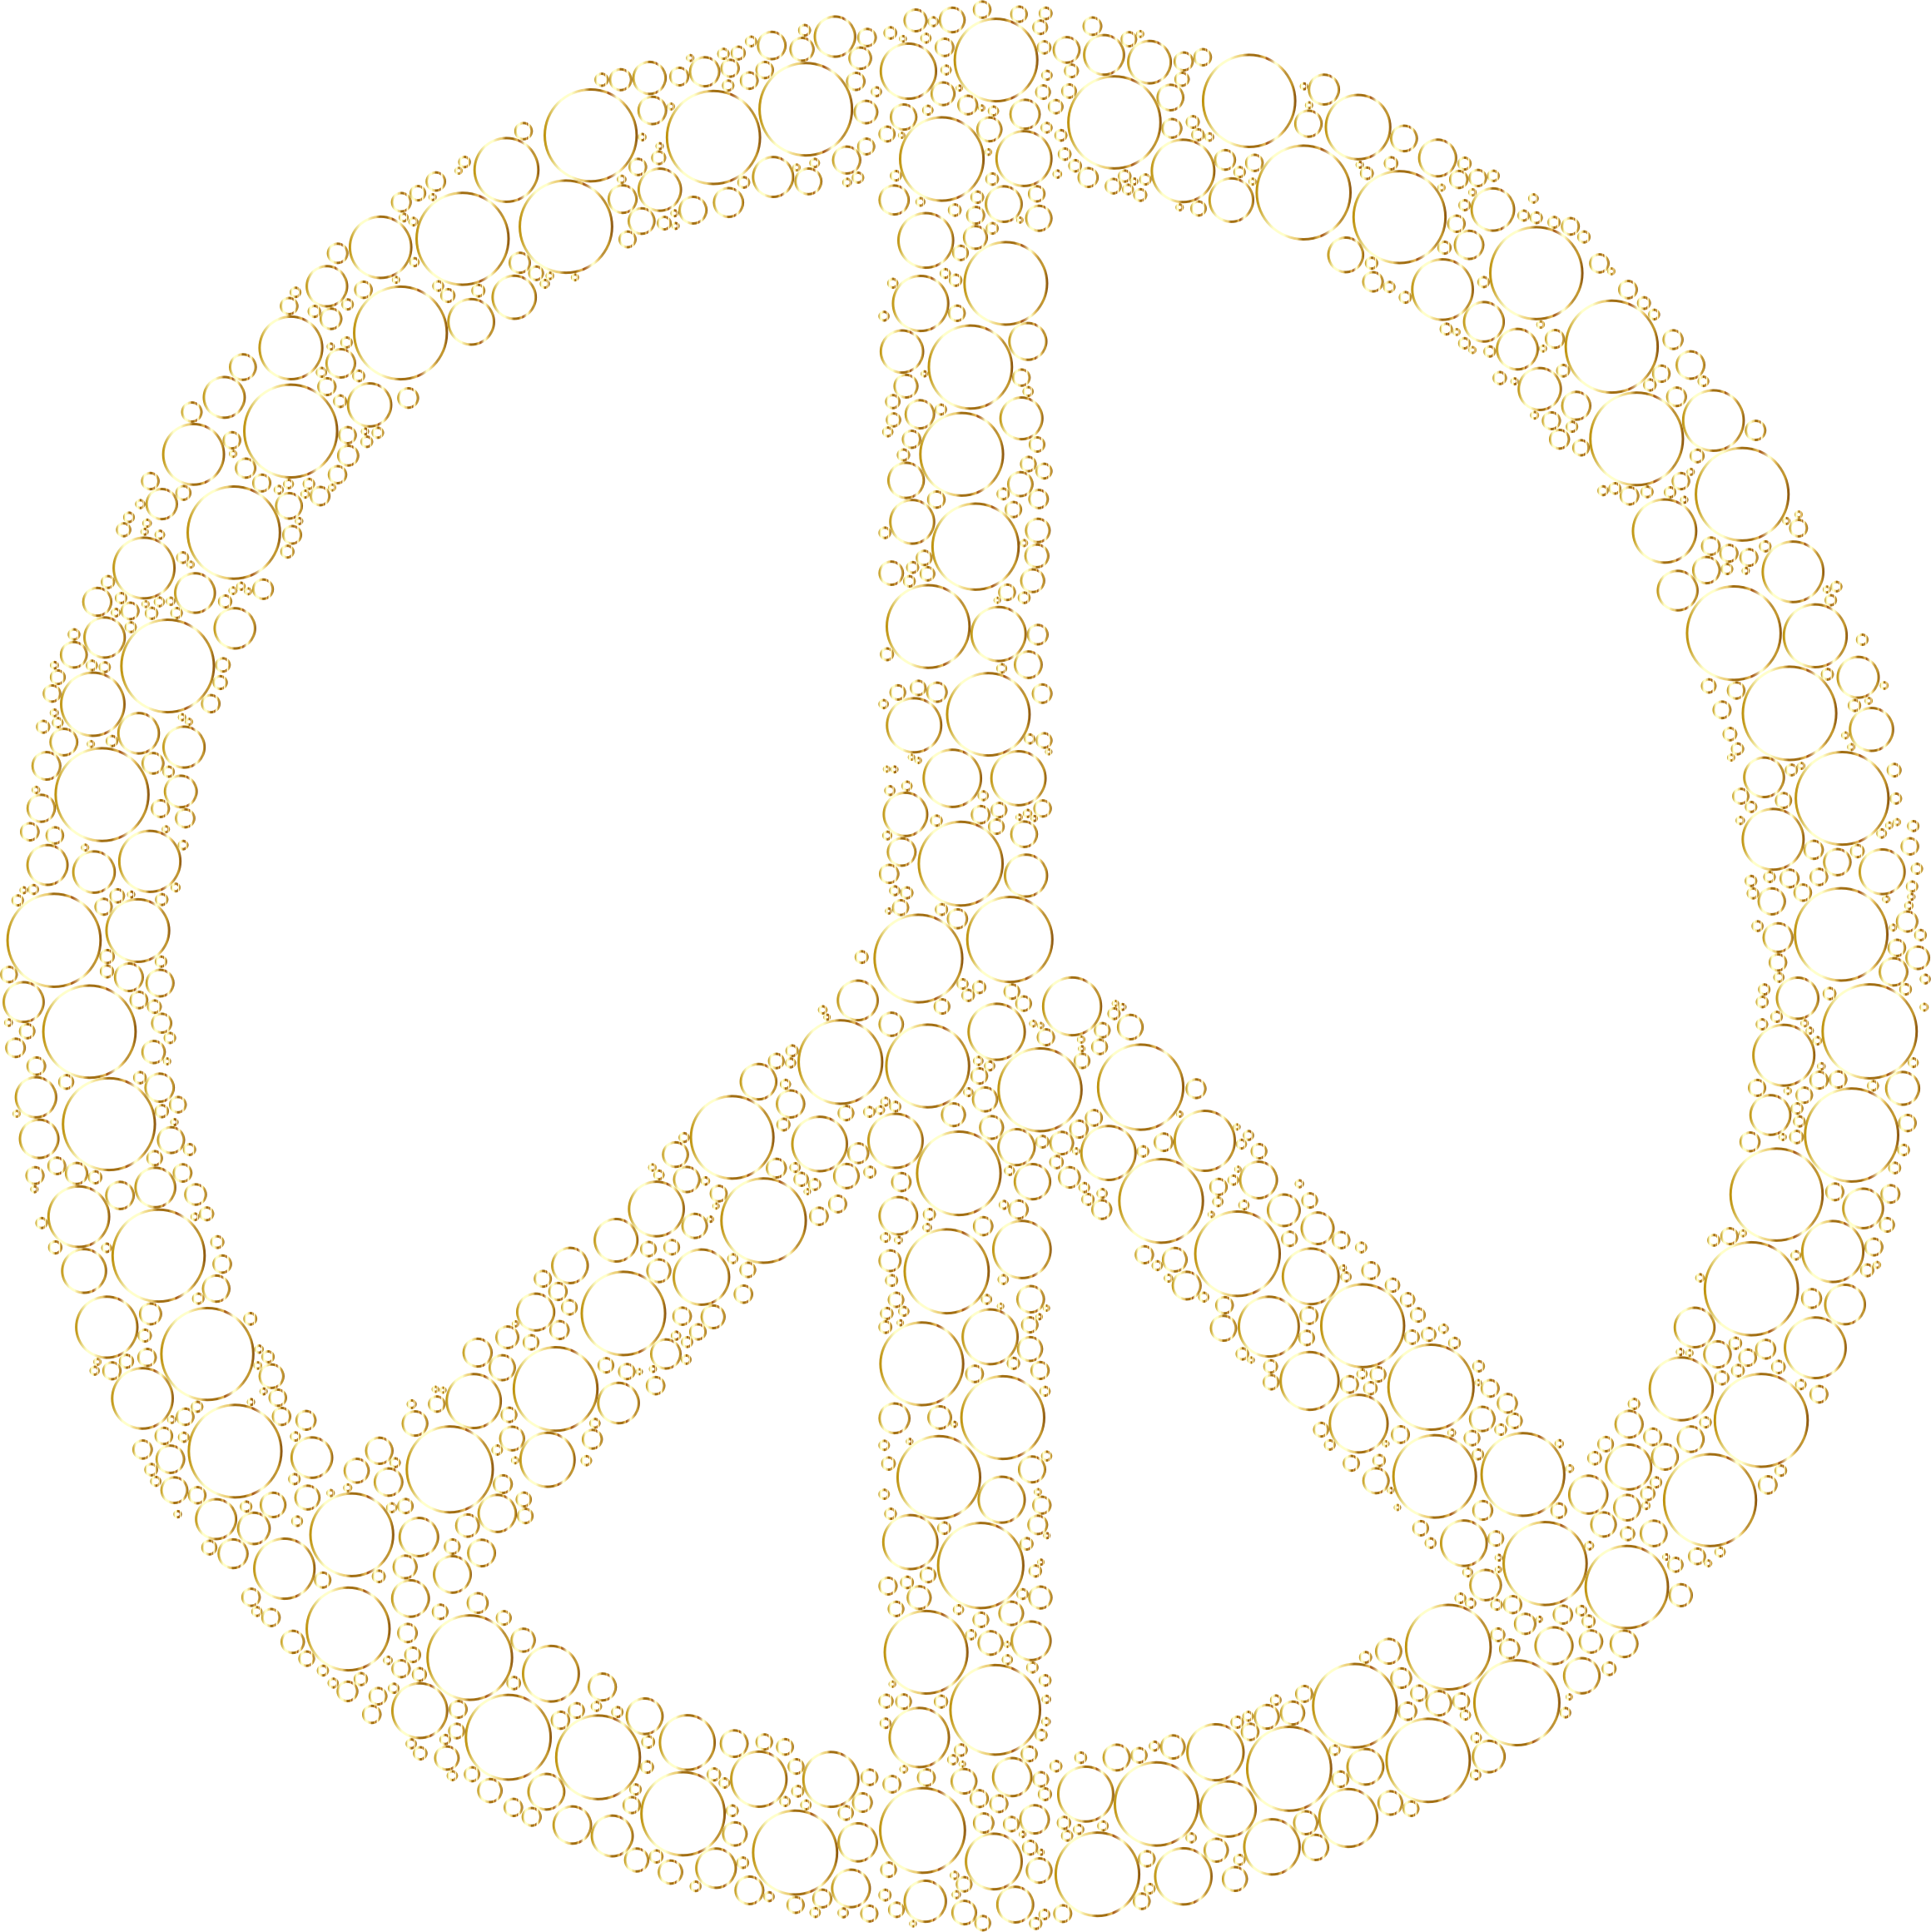 Colorful Circles Peace Sign 26 Without Background by GDJ